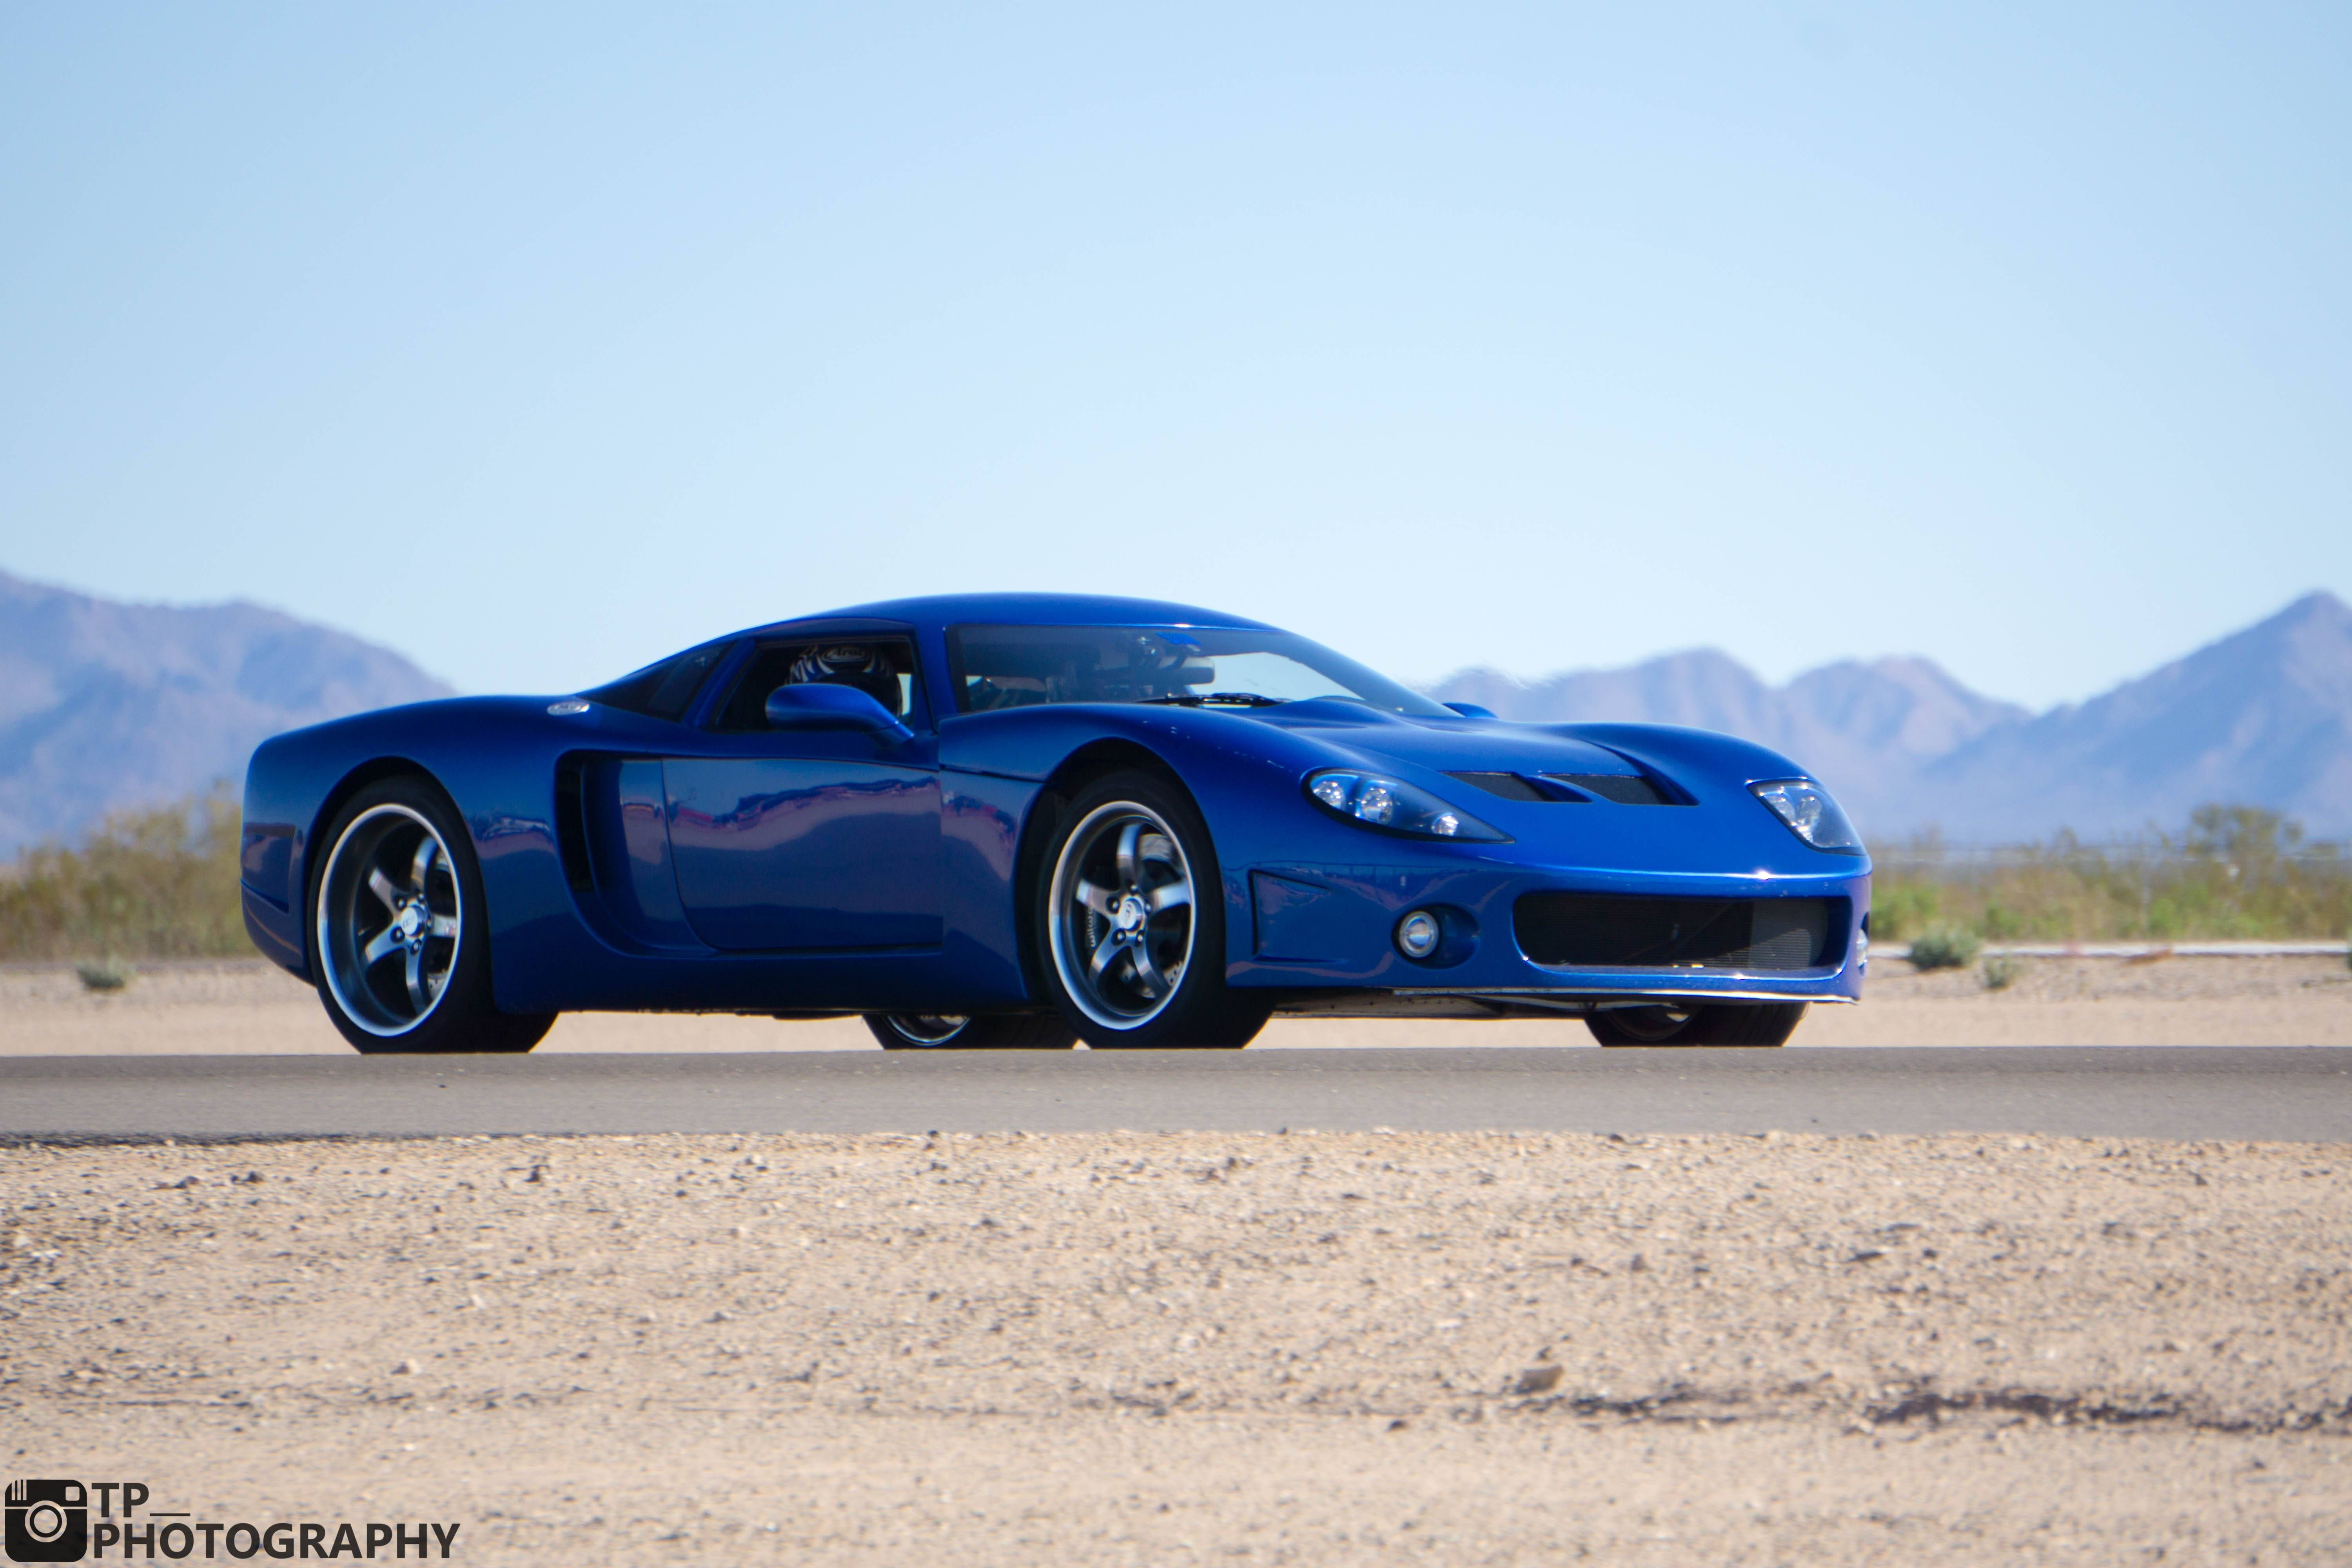 Factory Five Gtm It S A Kit Car That You Build To Your Own Spec